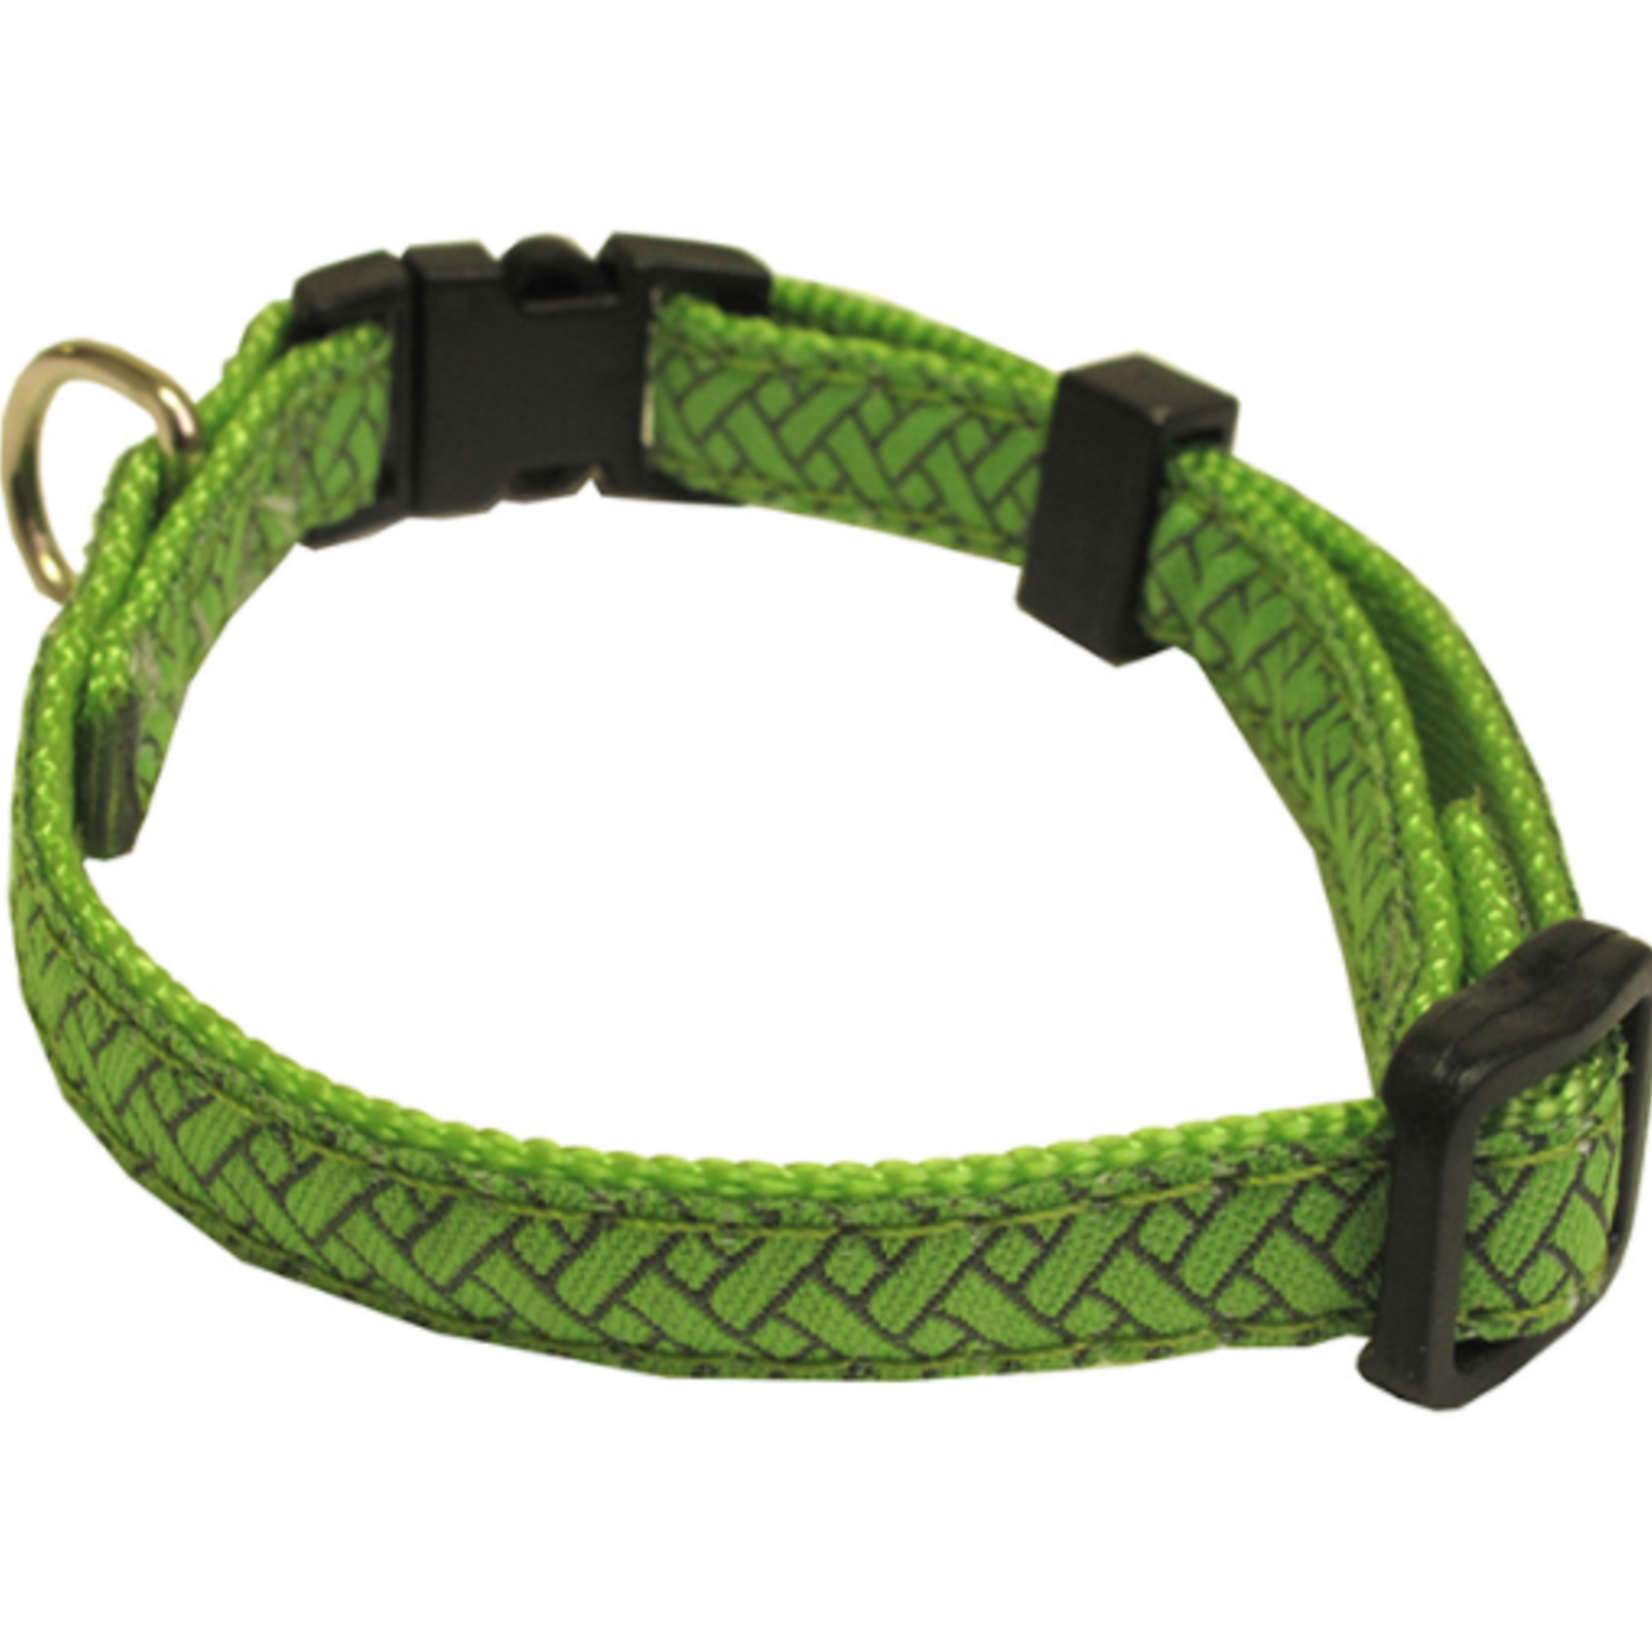 Hunter Brand Security Adjustable collar-from 6 to 9 in-Color Green Lattice